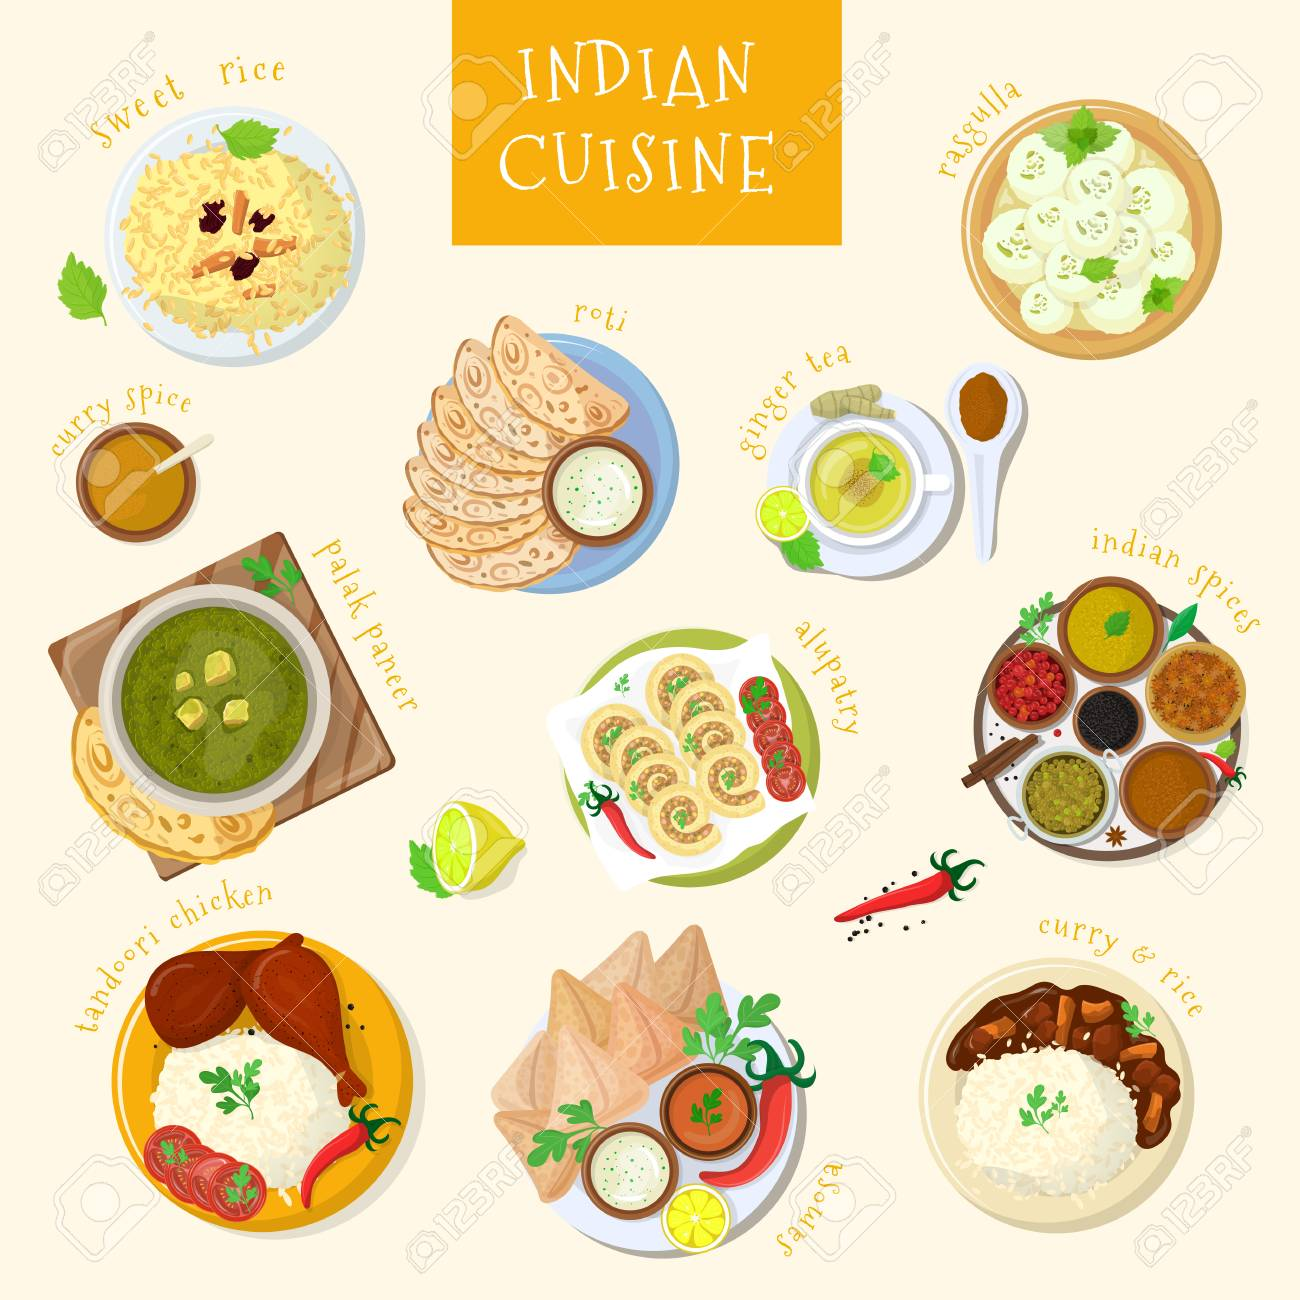 Cuisine India Indian Food Vector India Cuisine And Asian Dishes Masala With